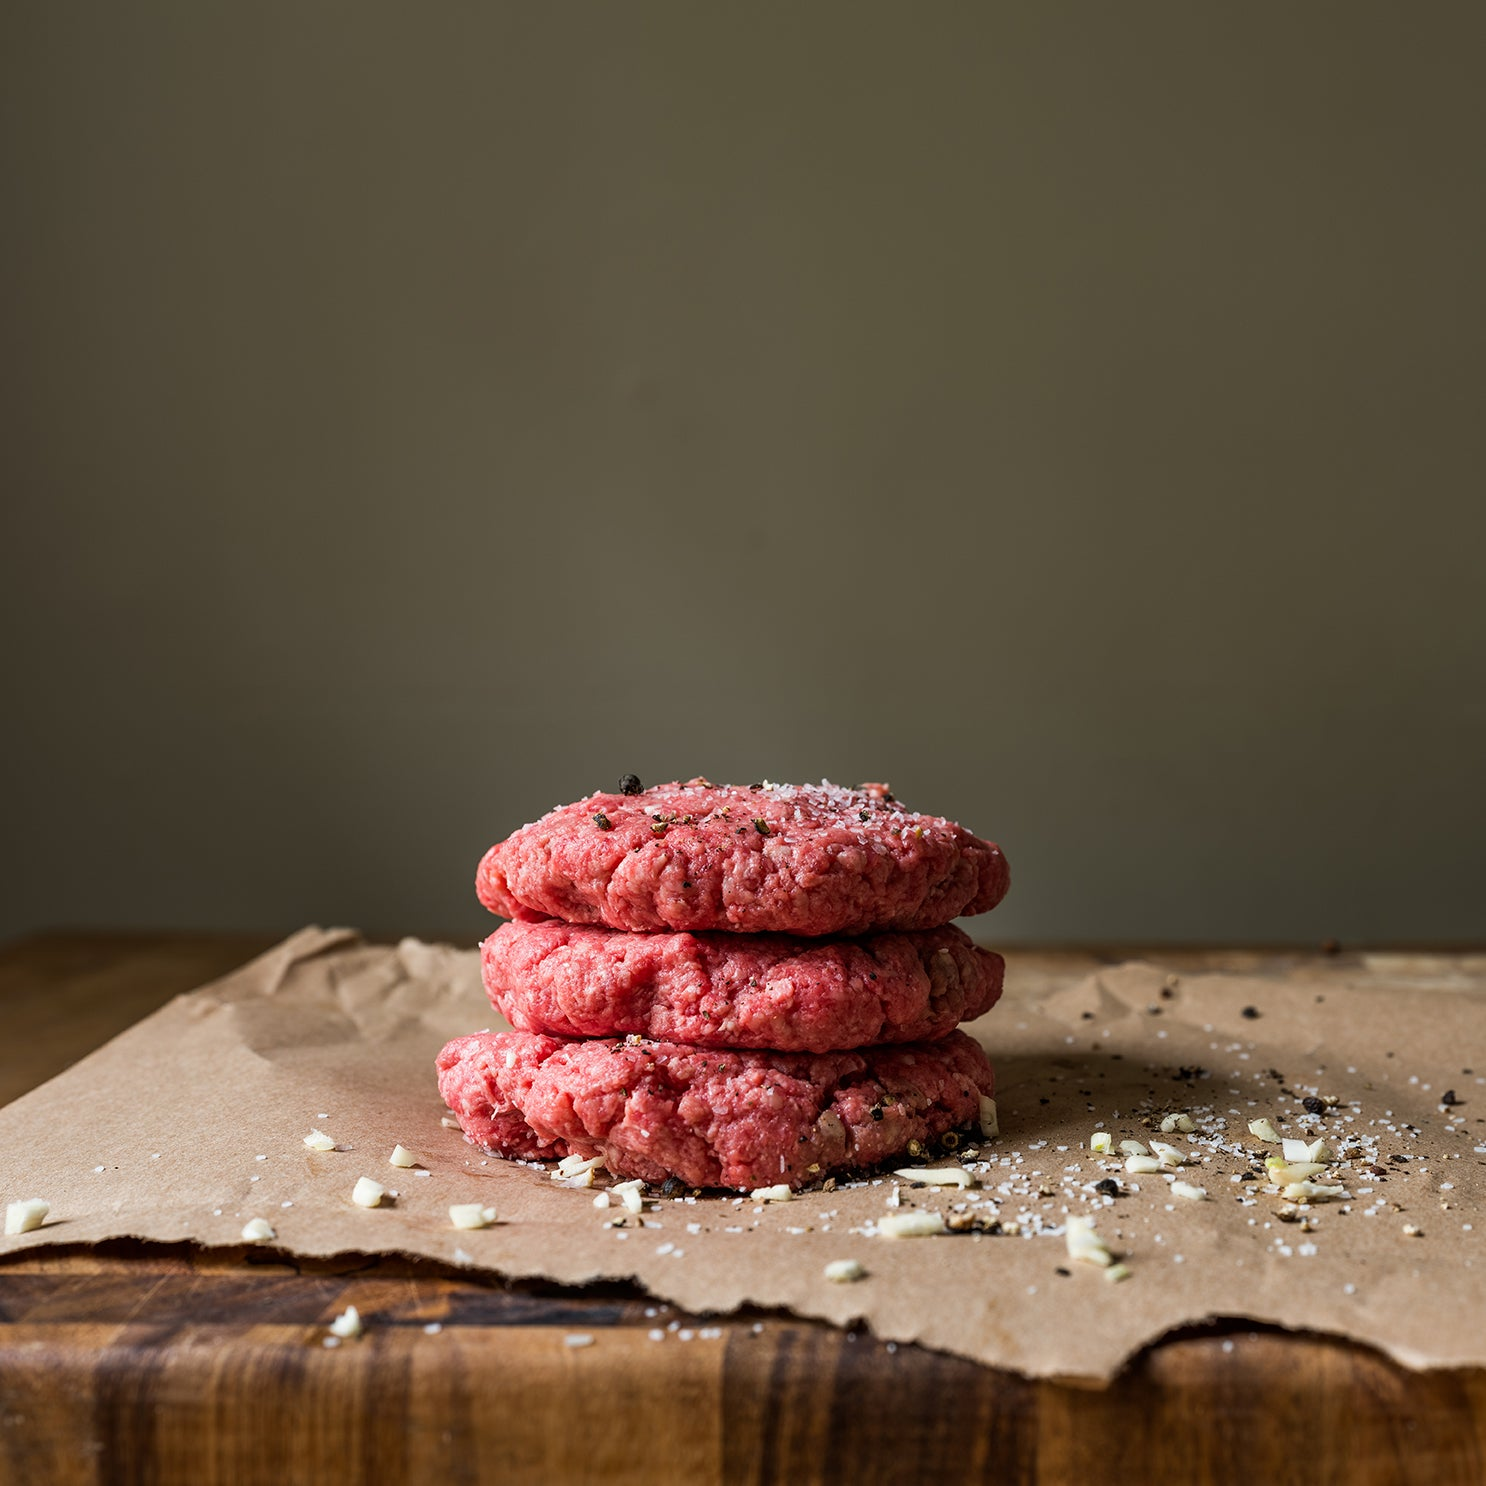 Shipley Farm 1/3 lb Hamburger Patties - 6 Per Package